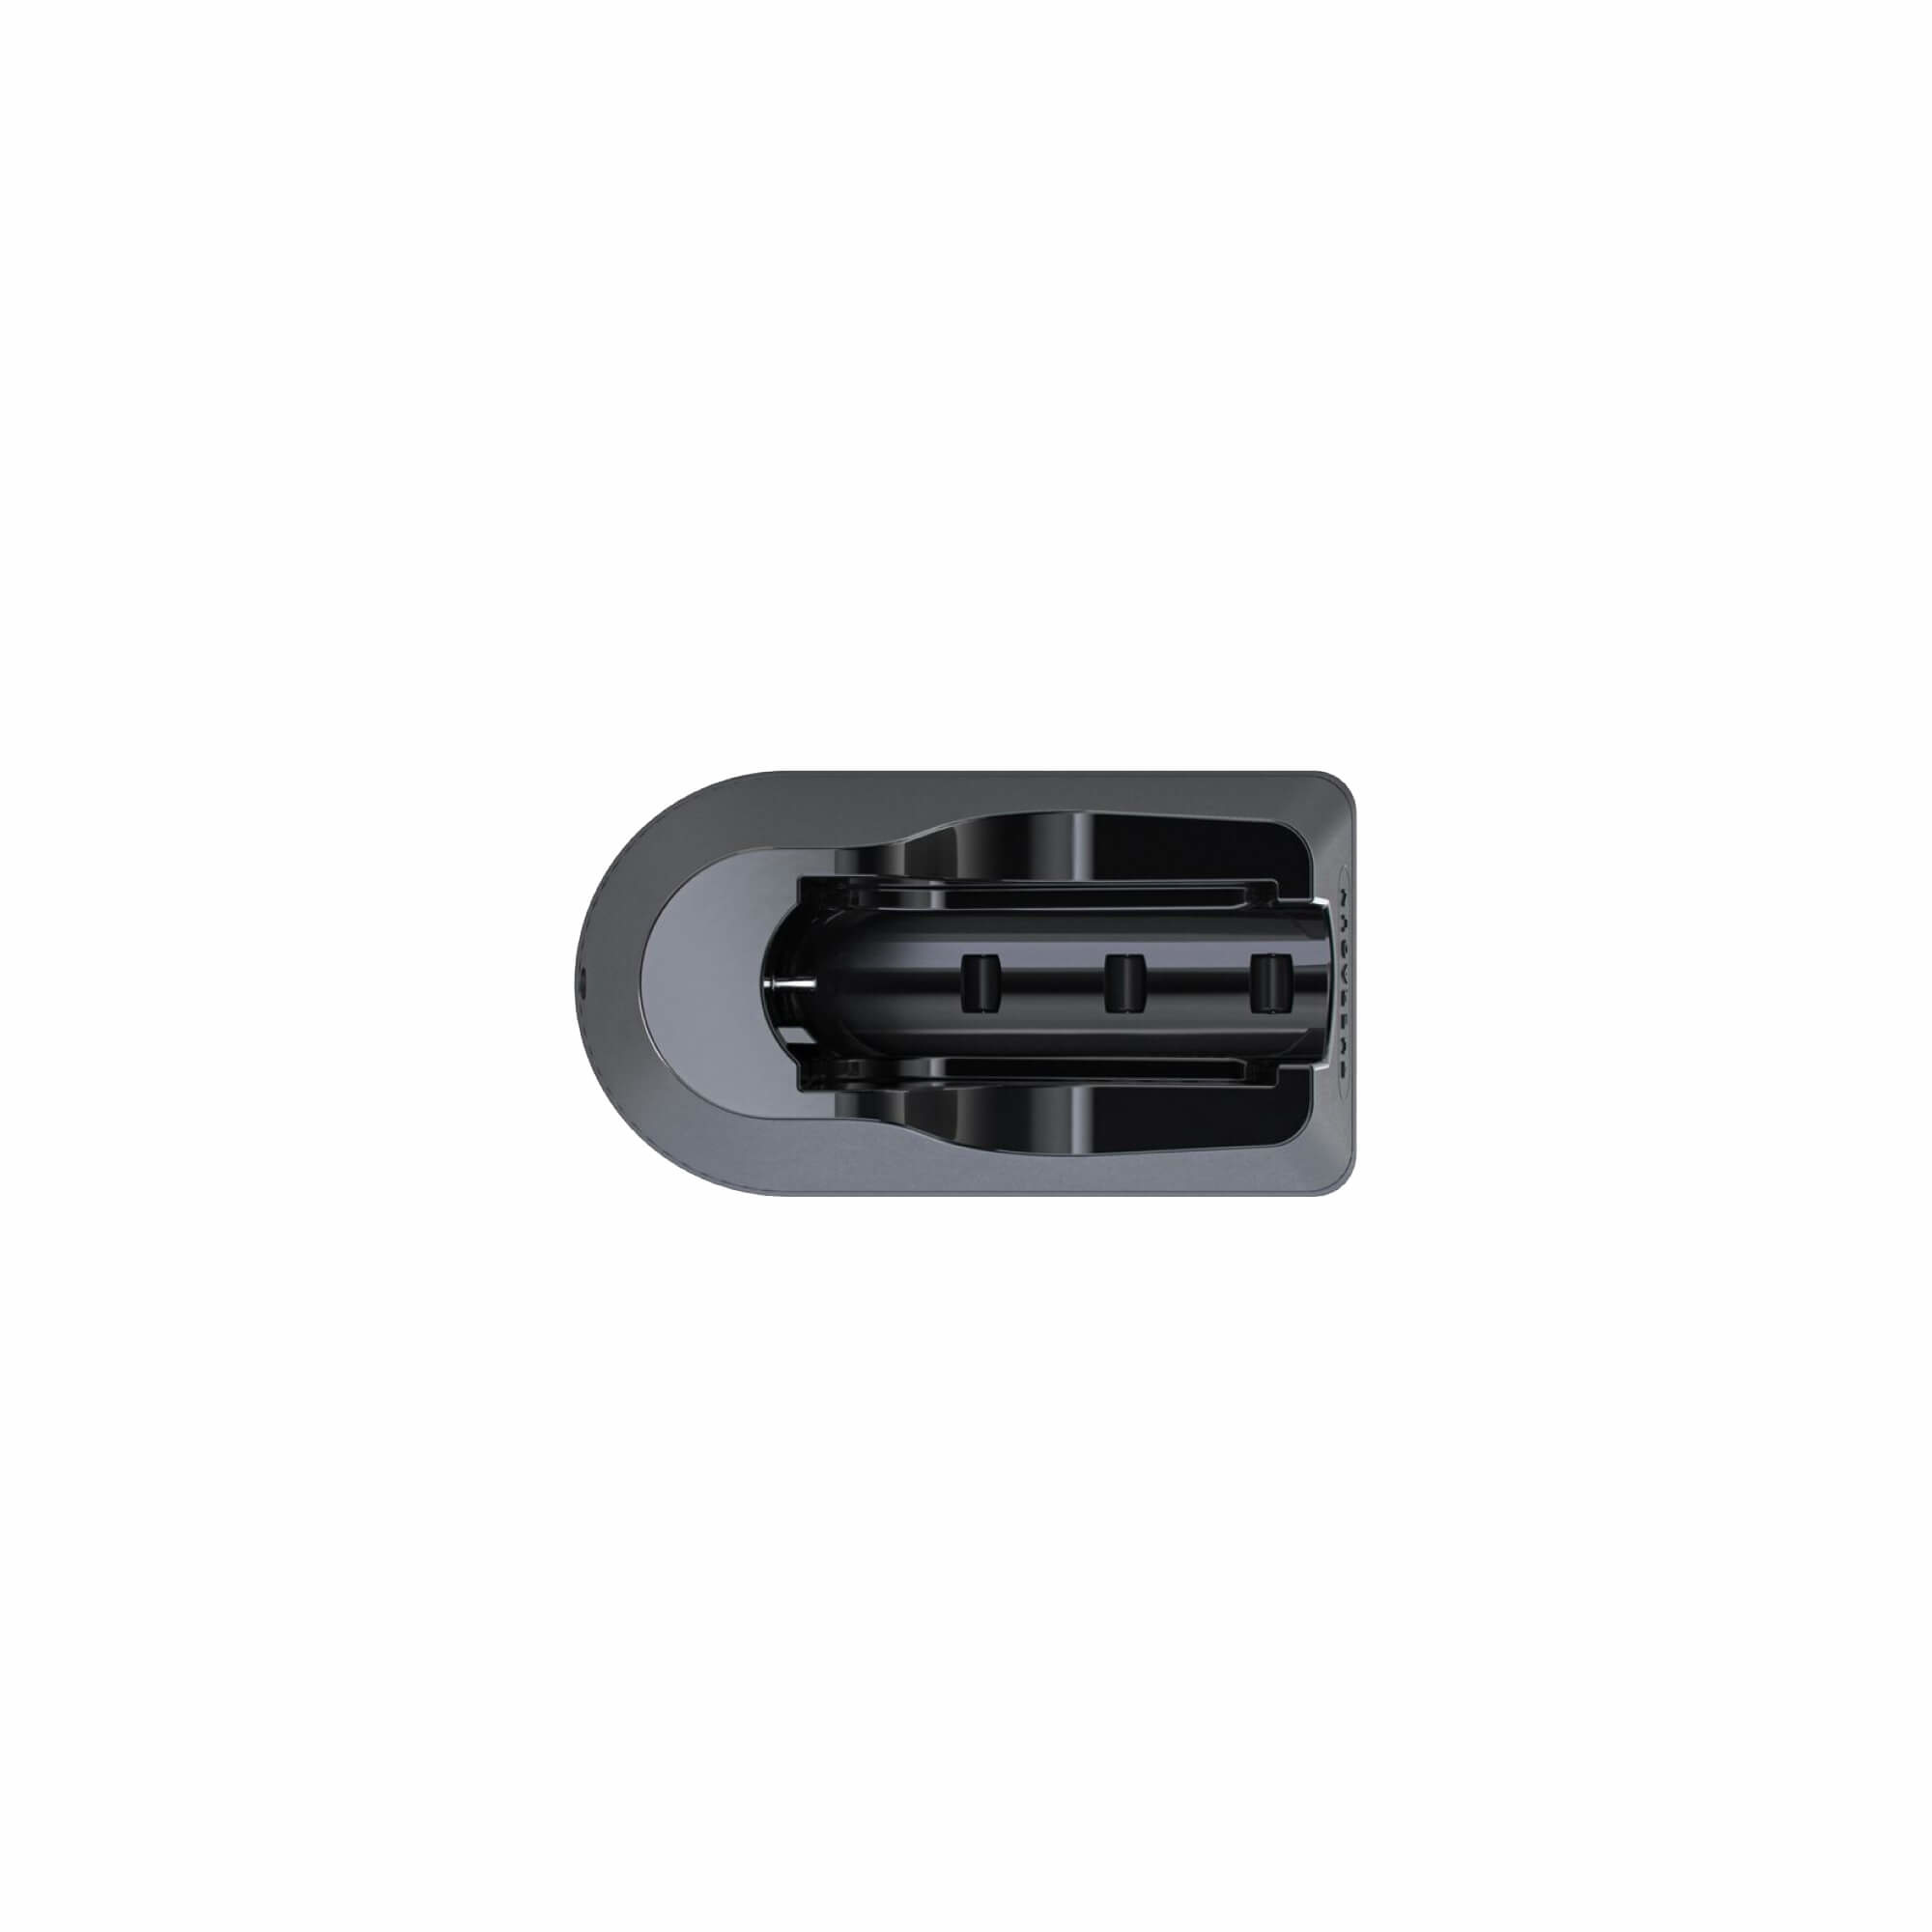 Charger Charging Stand For Gen4 Prime-4